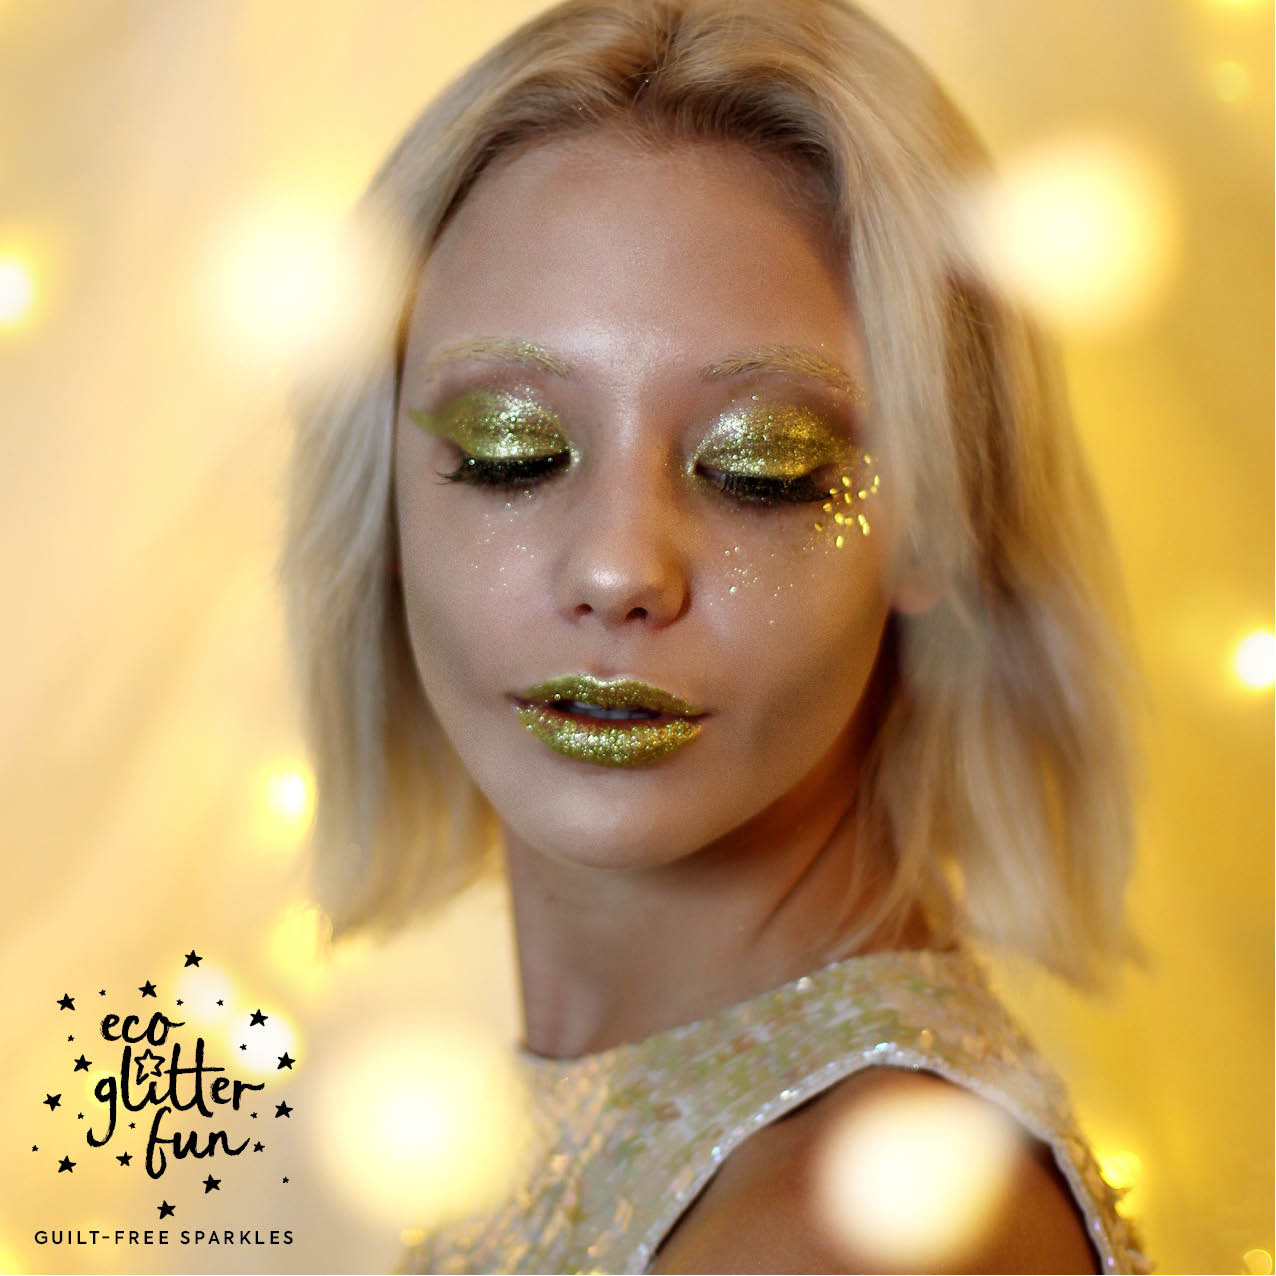 Golden Goddess with gold glitter eyes from Eco Glitter Fun